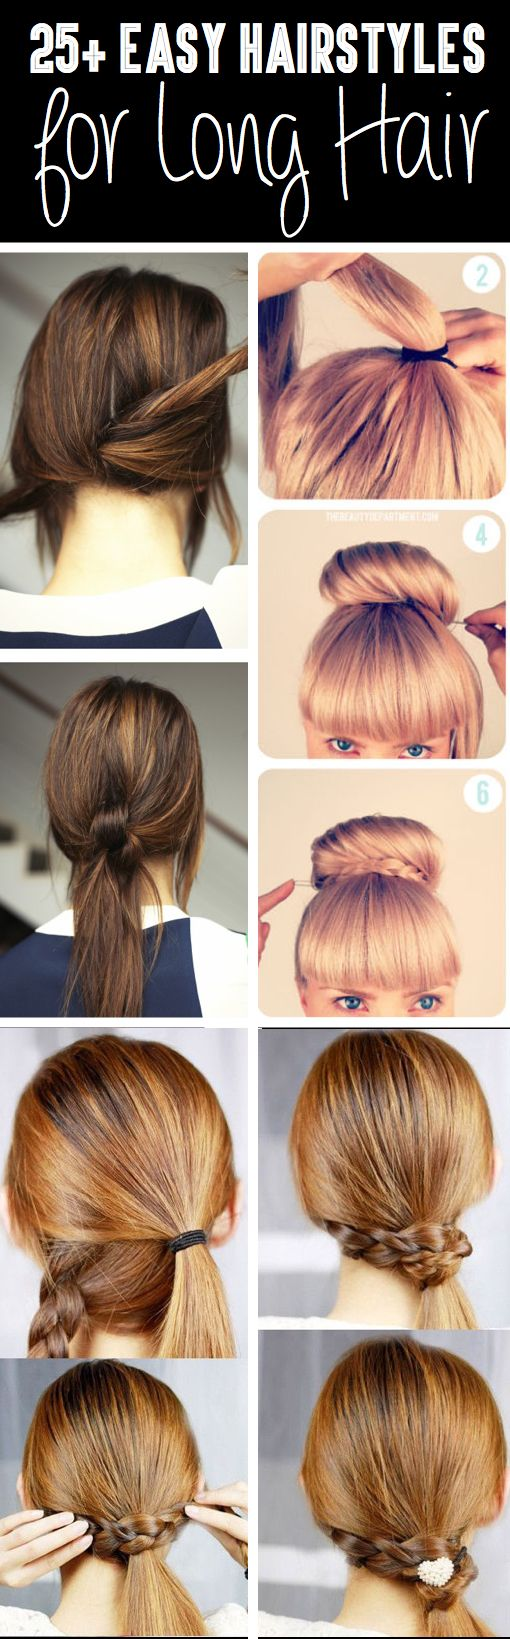 Wondrous Easy Hairstyles Hairstyle For Long Hair And To Cute On Pinterest Short Hairstyles For Black Women Fulllsitofus